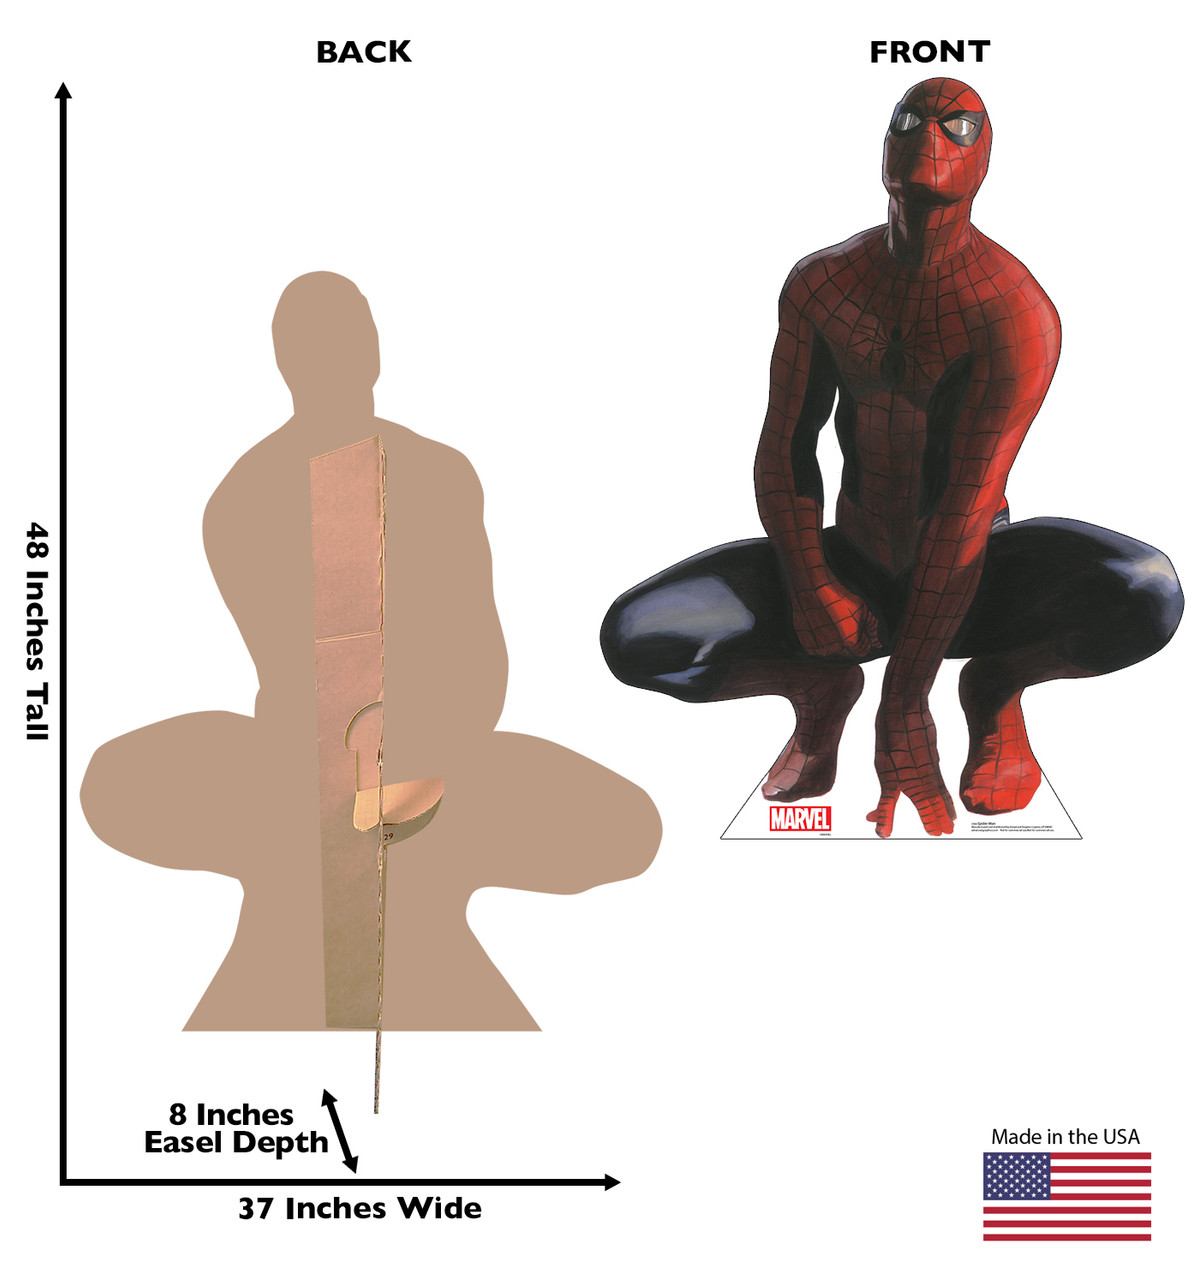 Life-size cardboard standee of Spider-Man from Marvels Timeless Collection with back and front dimensions.